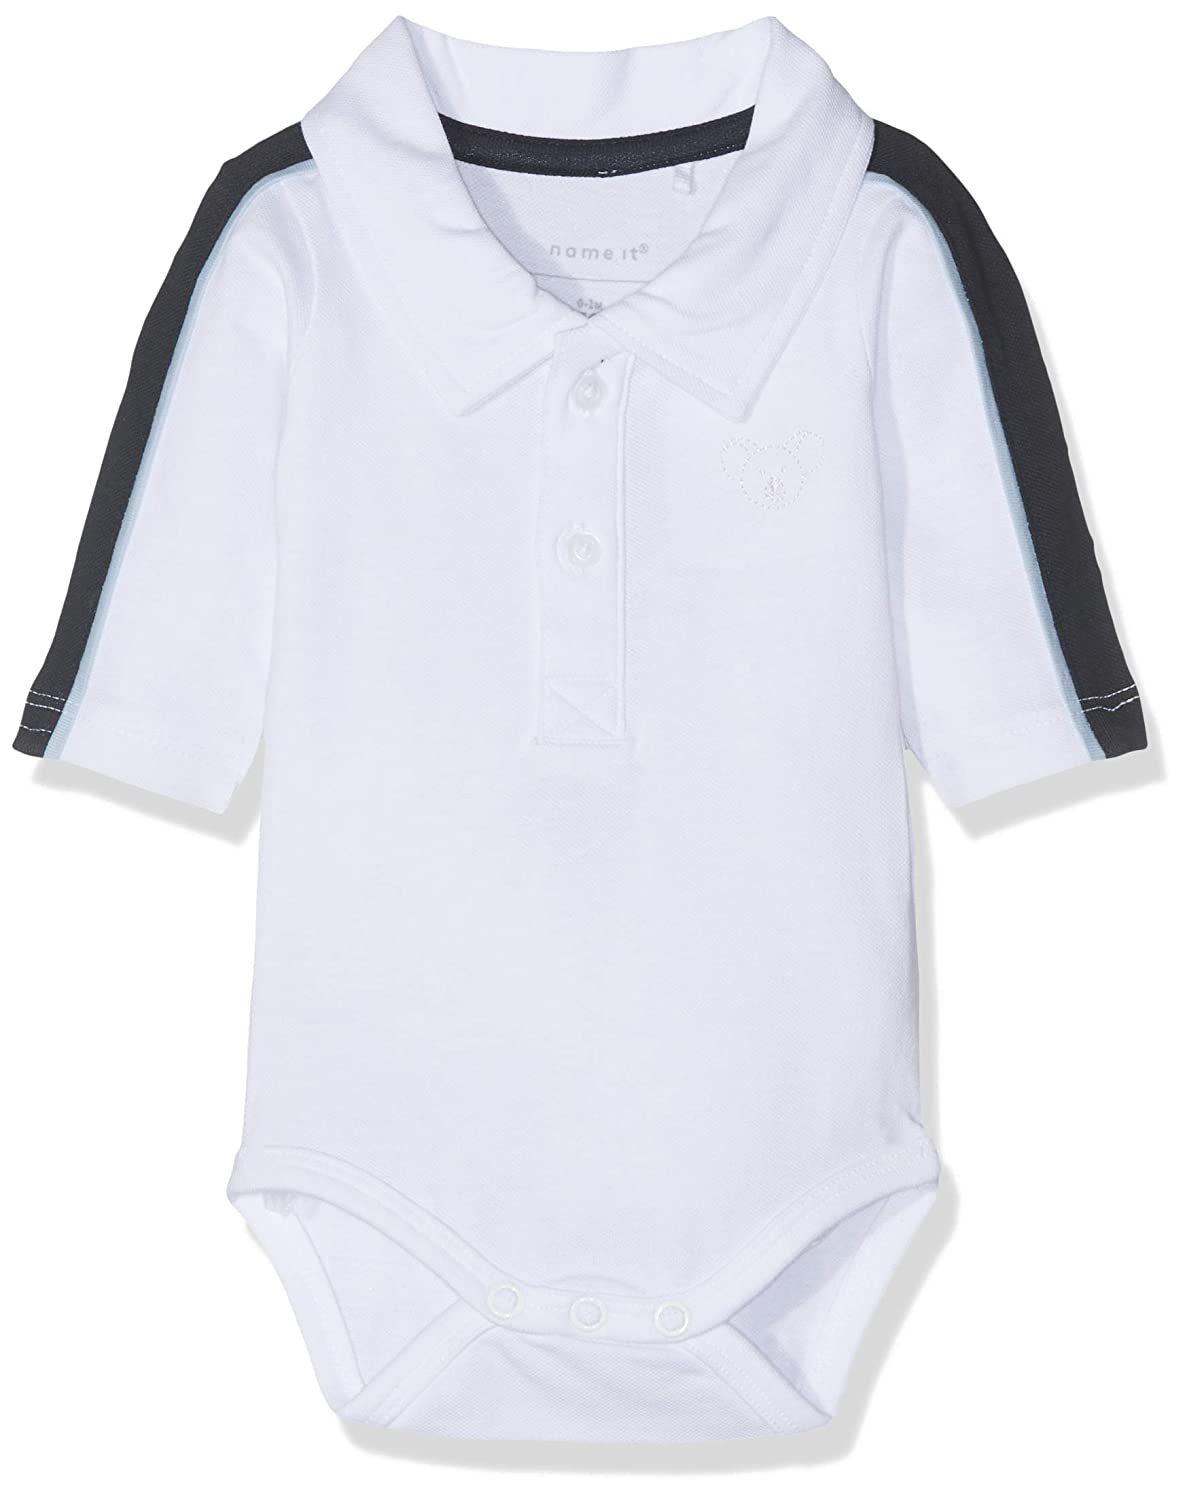 NAME IT Nbmhesonne LS Polo Body Polaina para Bebés: Amazon.es ...